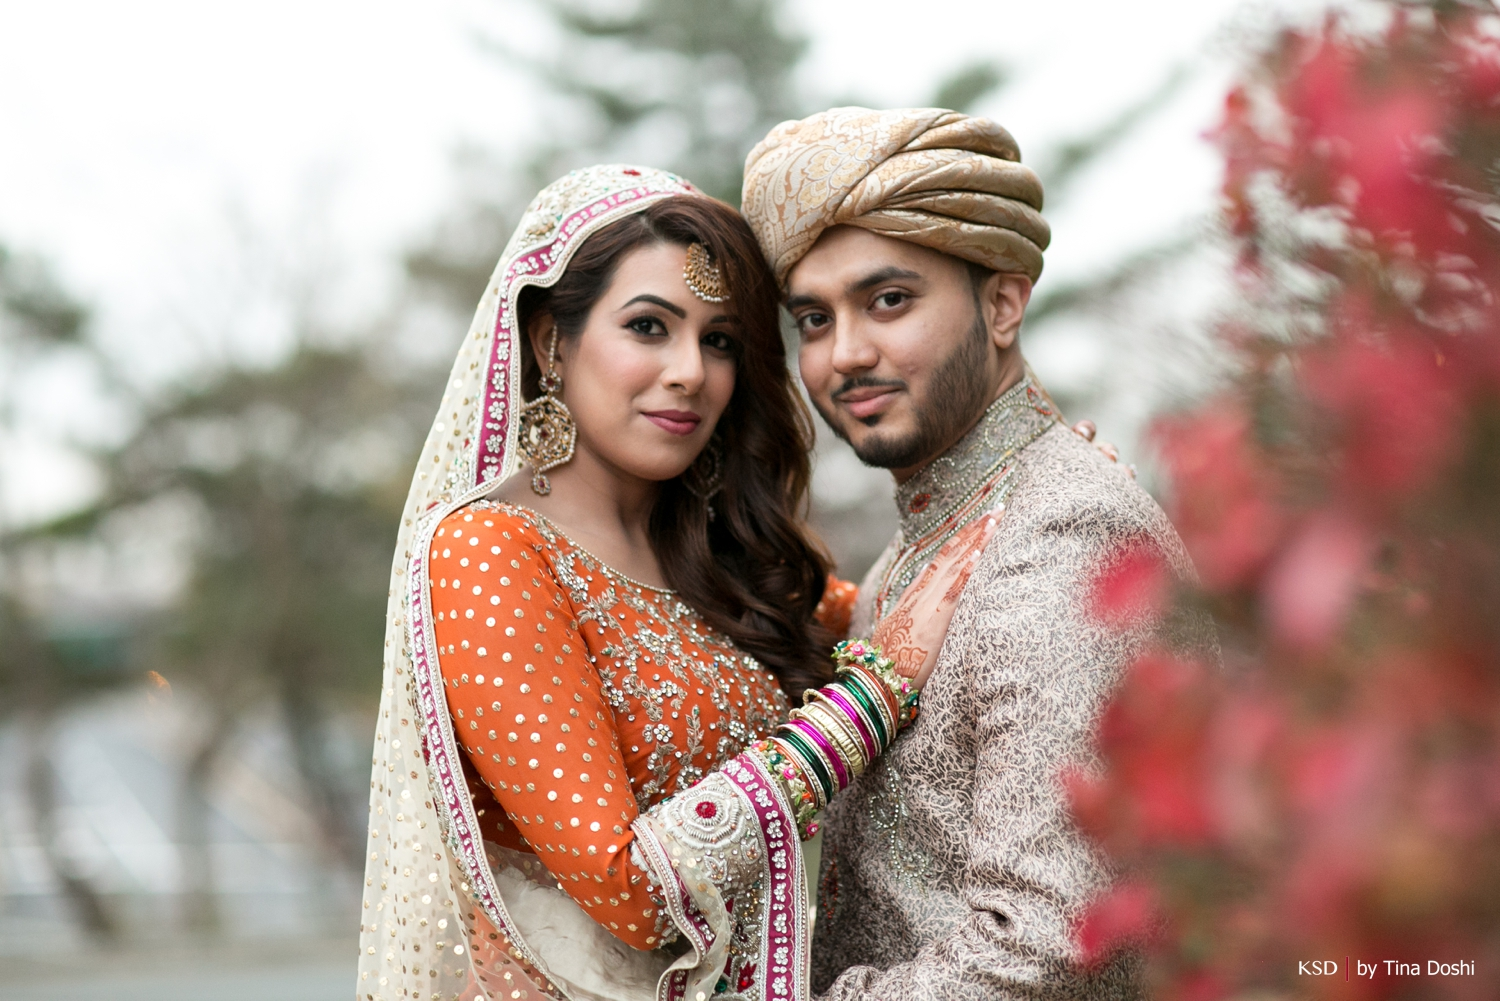 nj_south_asian_wedding_0146